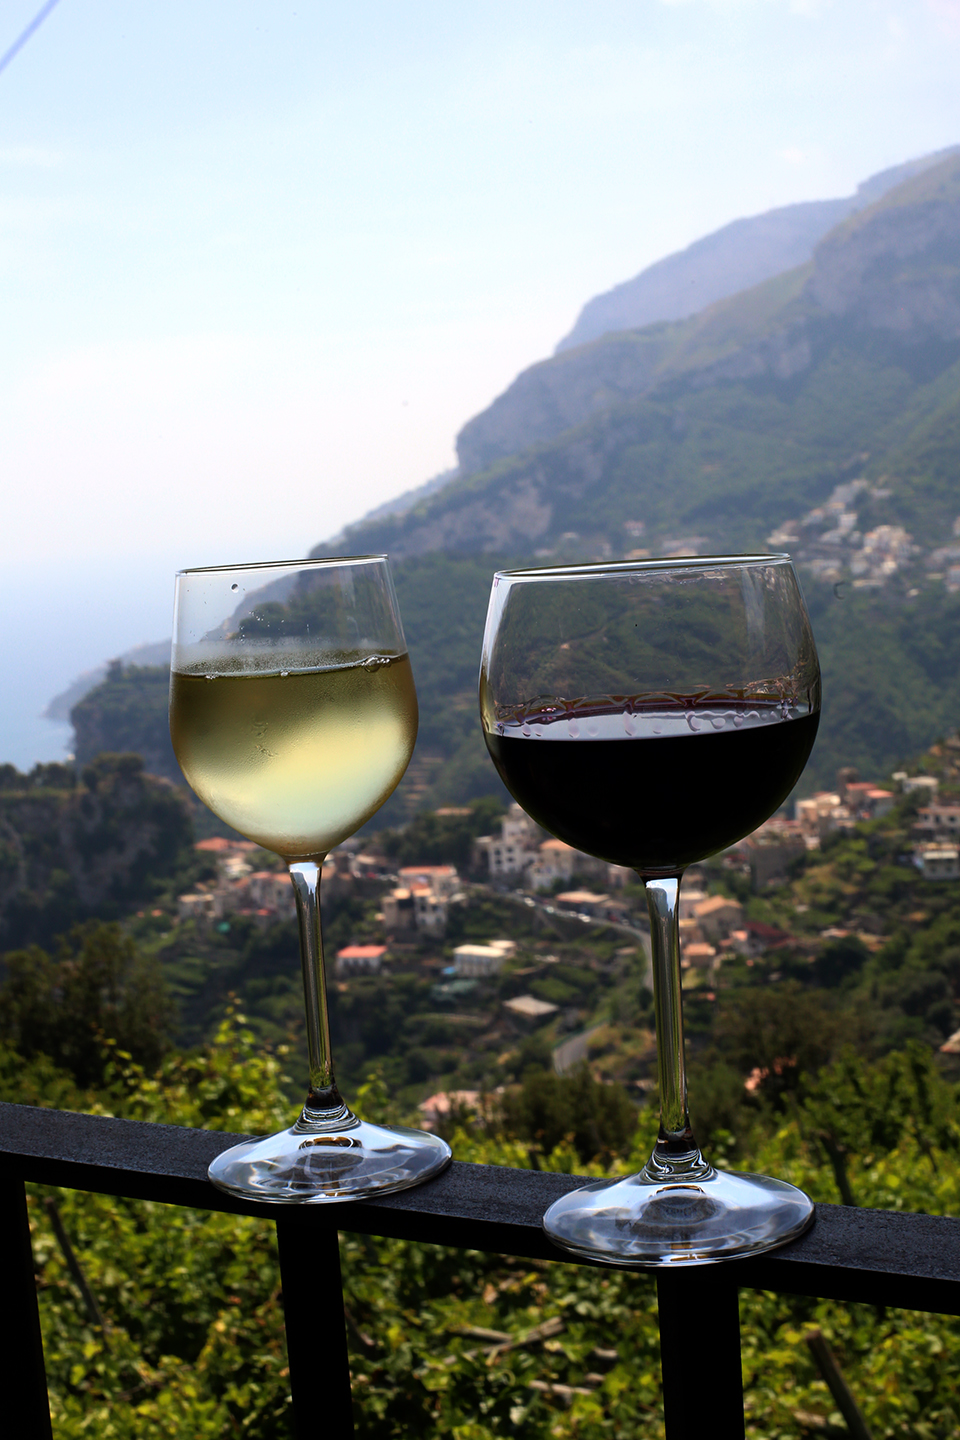 ravello-travel-blogger-italy-travel-diary-south-african-travel-blogger-amandacusto-002c.jpg